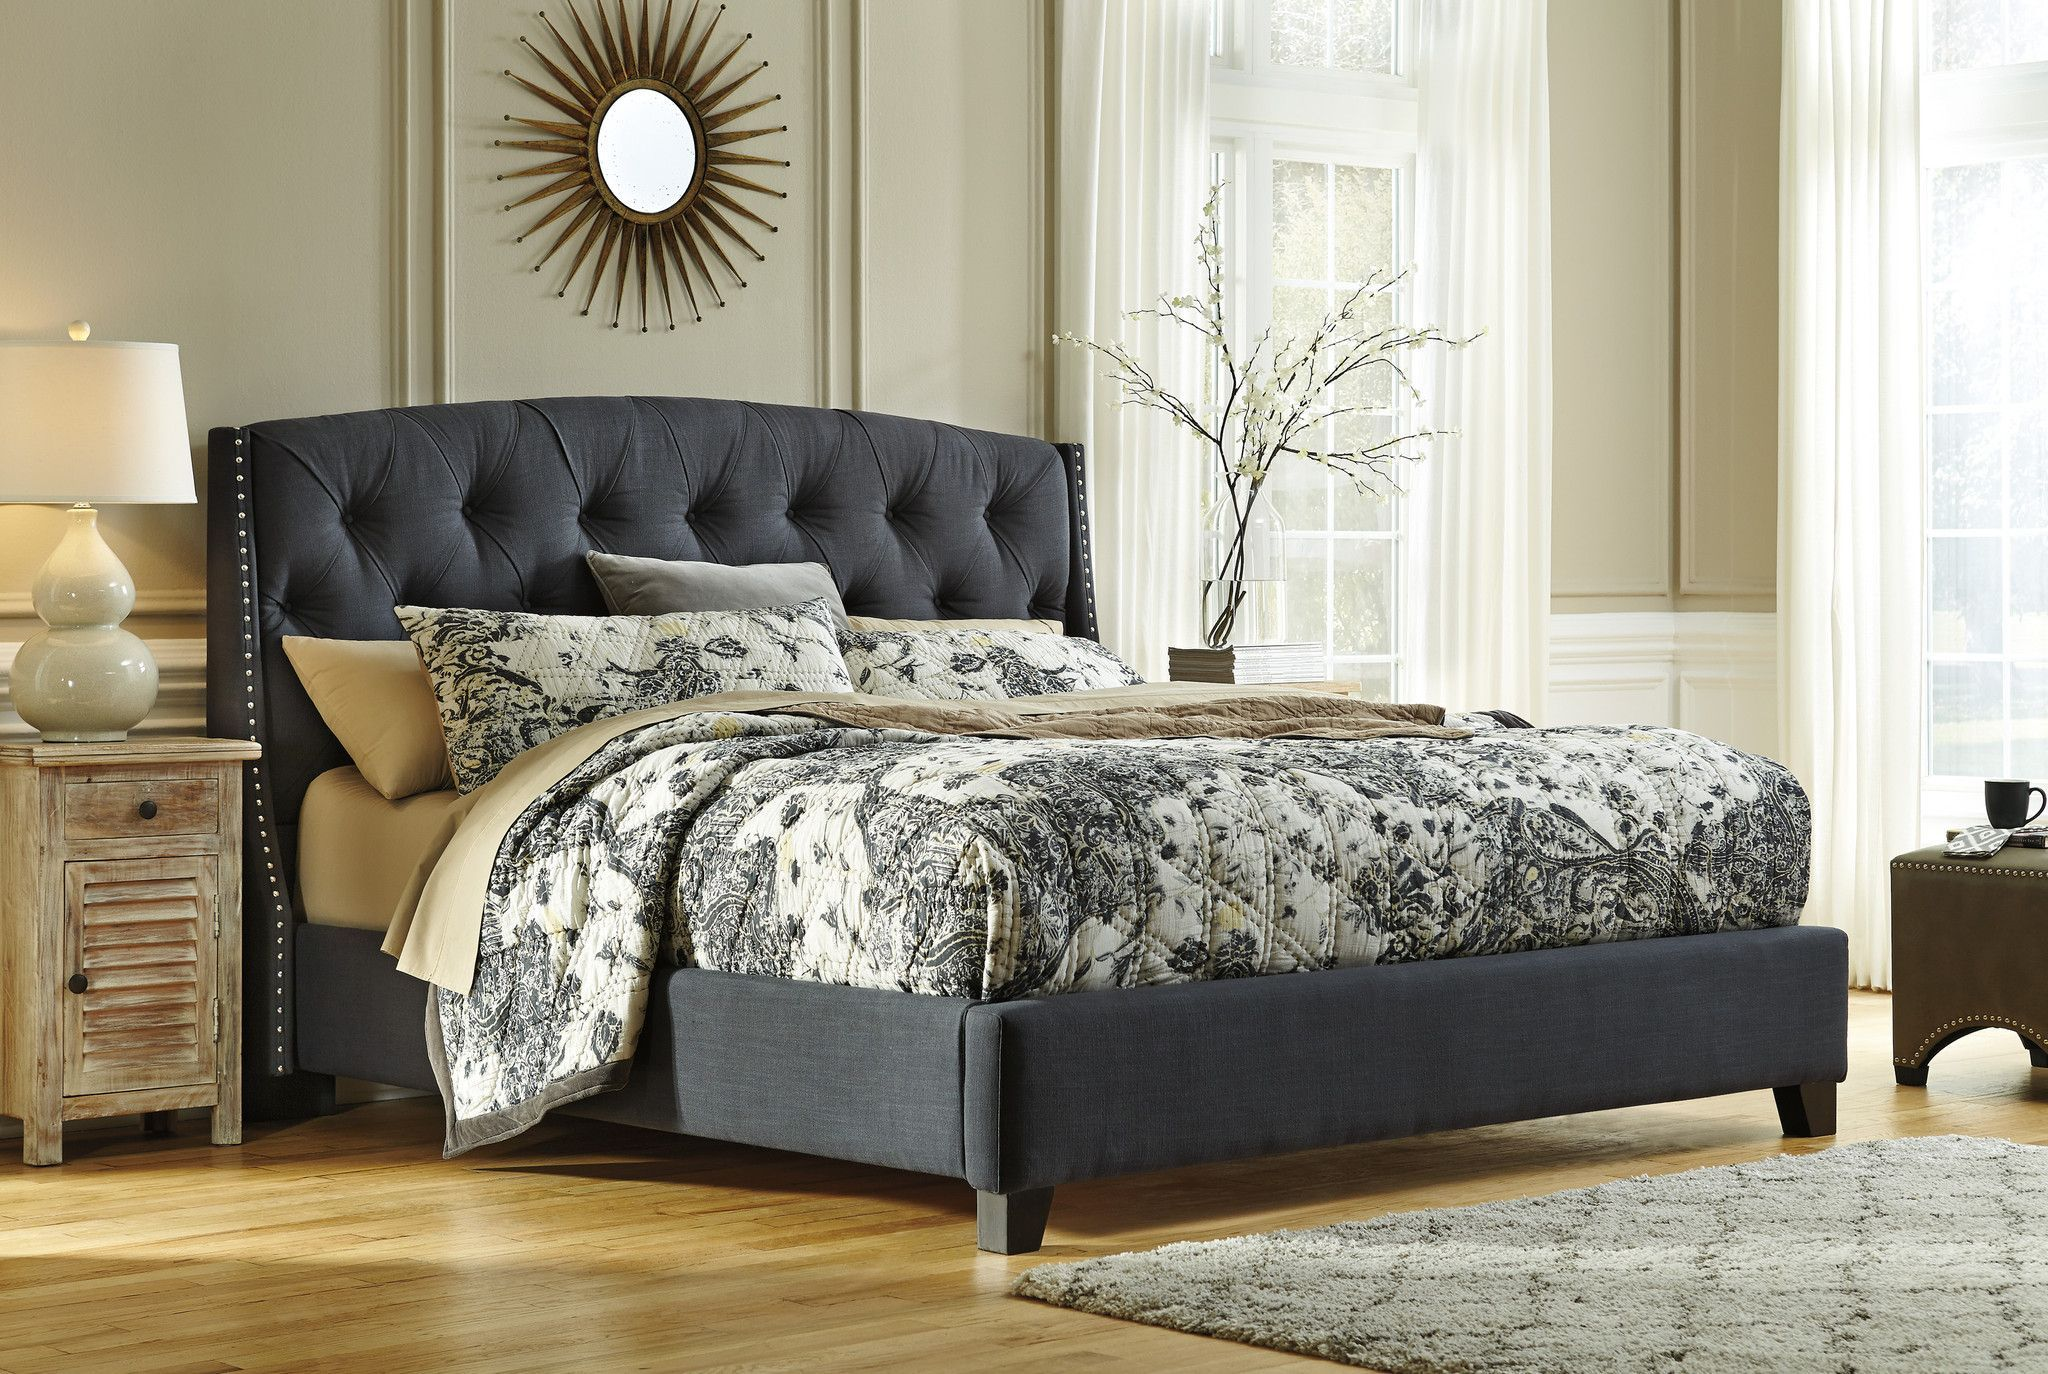 In Love With This Headboard On The Kasidon Queen Bed By Ashley Furniture This Bed Is Definitel King Upholstered